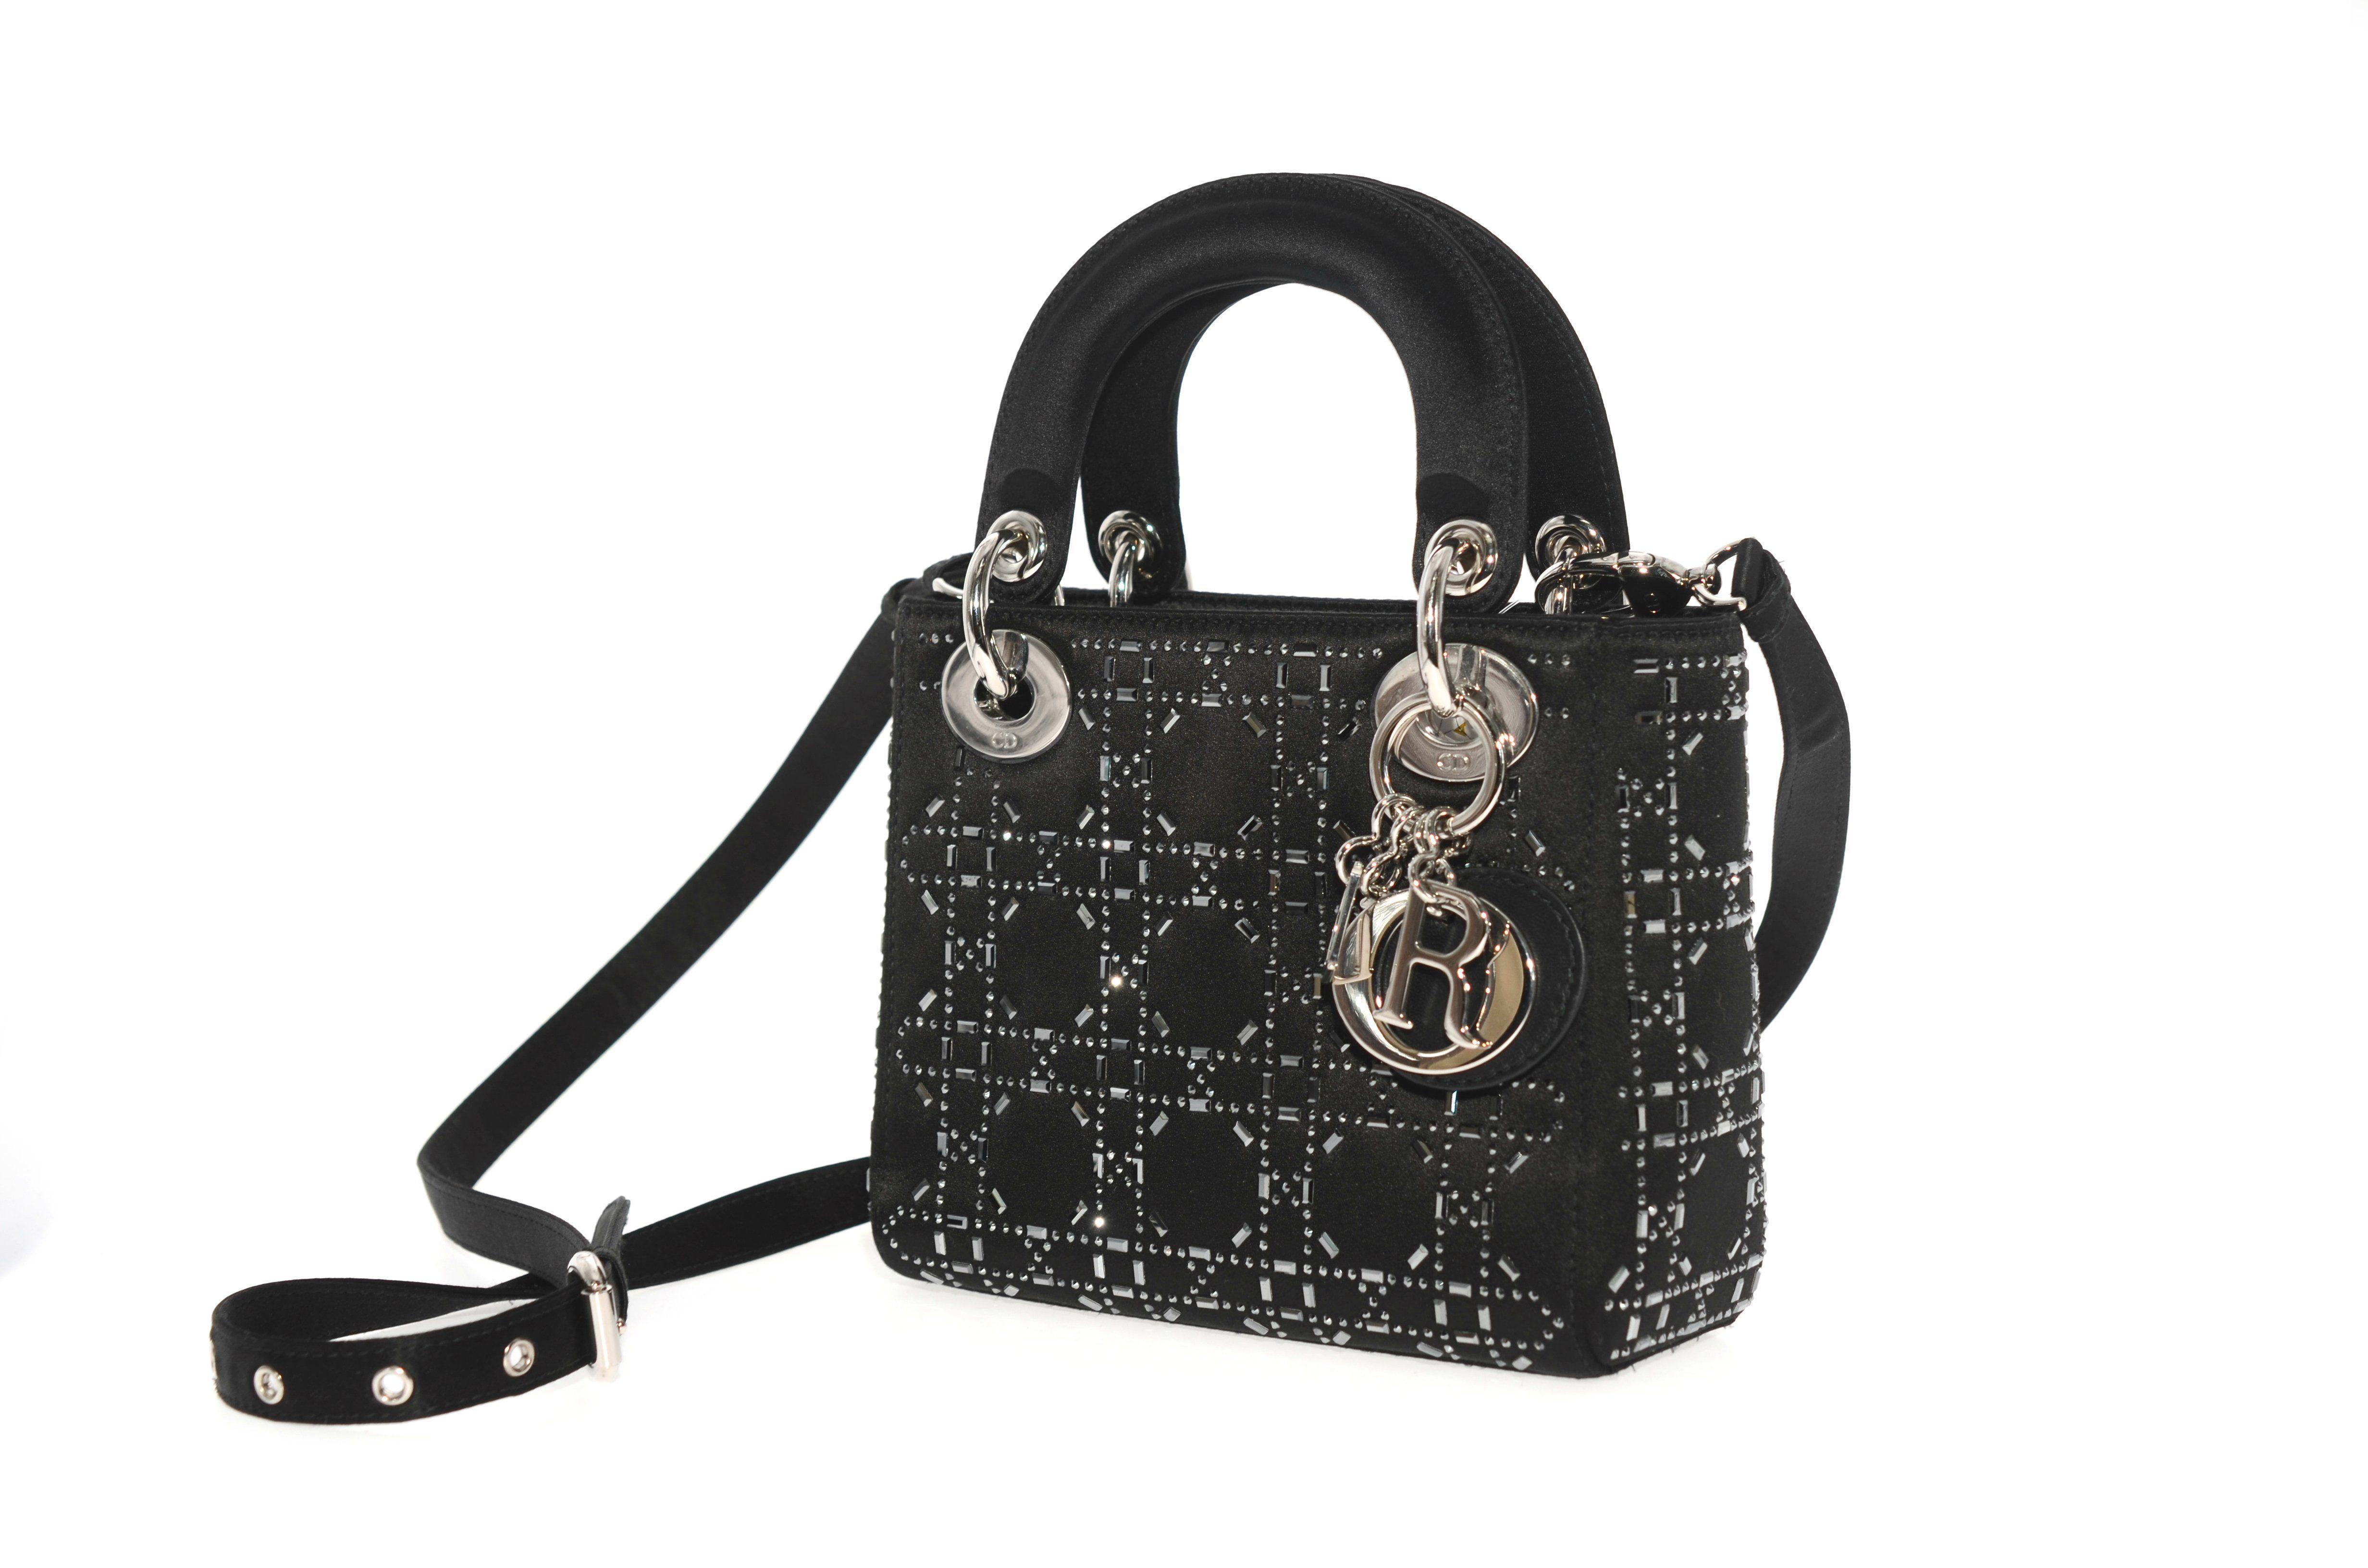 ae425201a5 CHRISTIAN DIOR MINI LADY DIOR BAG IN BLACK